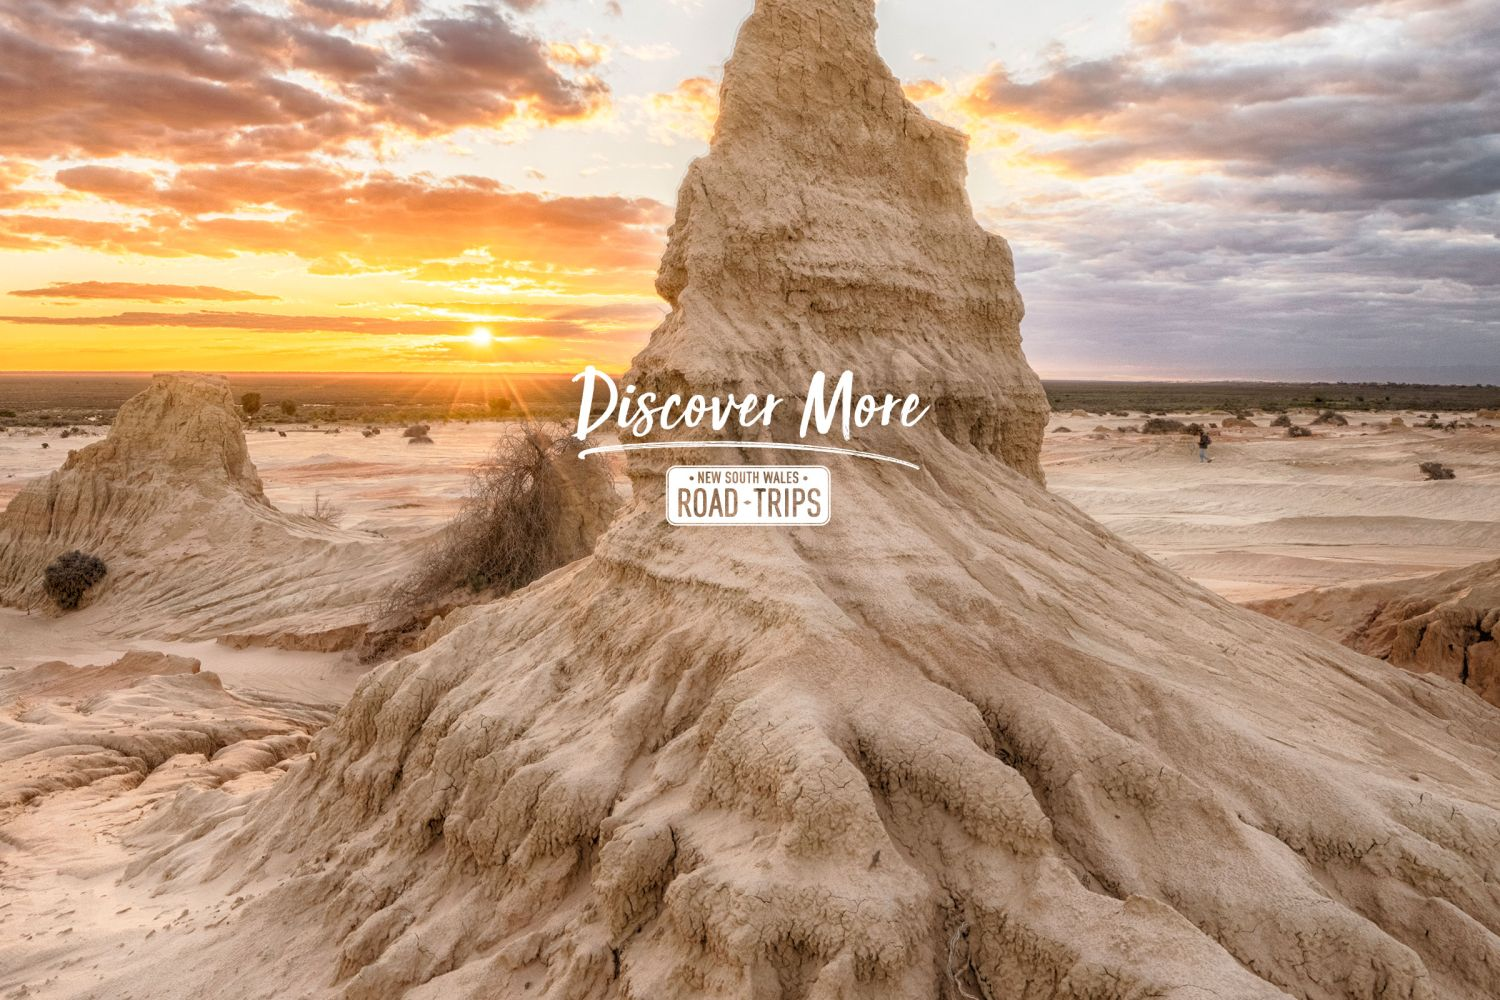 Walls of China in the World Heritage Mungo National Park